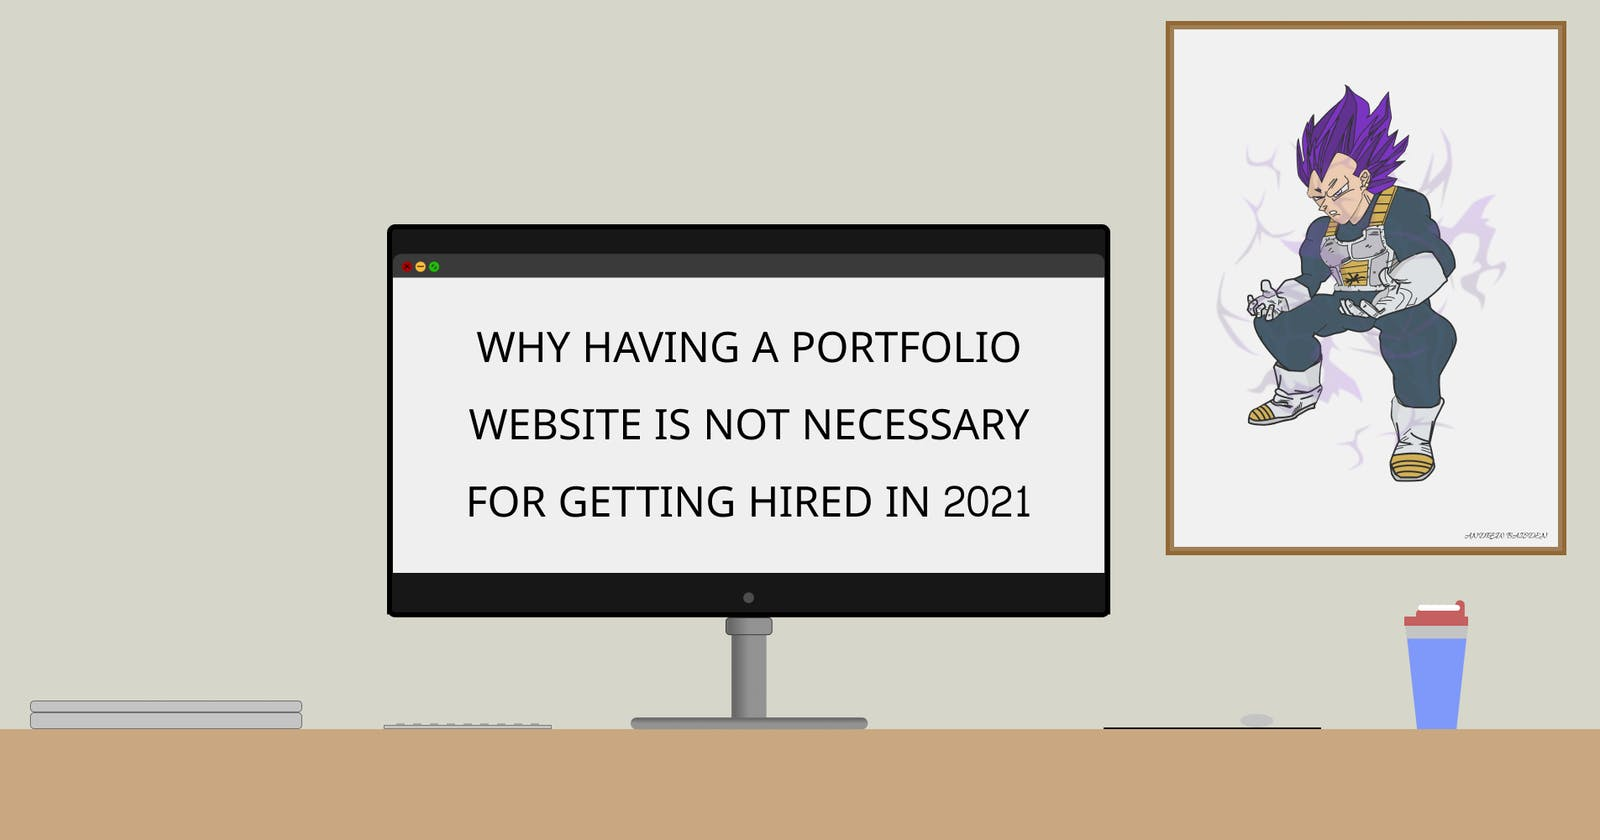 Why having a portfolio website is not necessary for getting hired in 2021